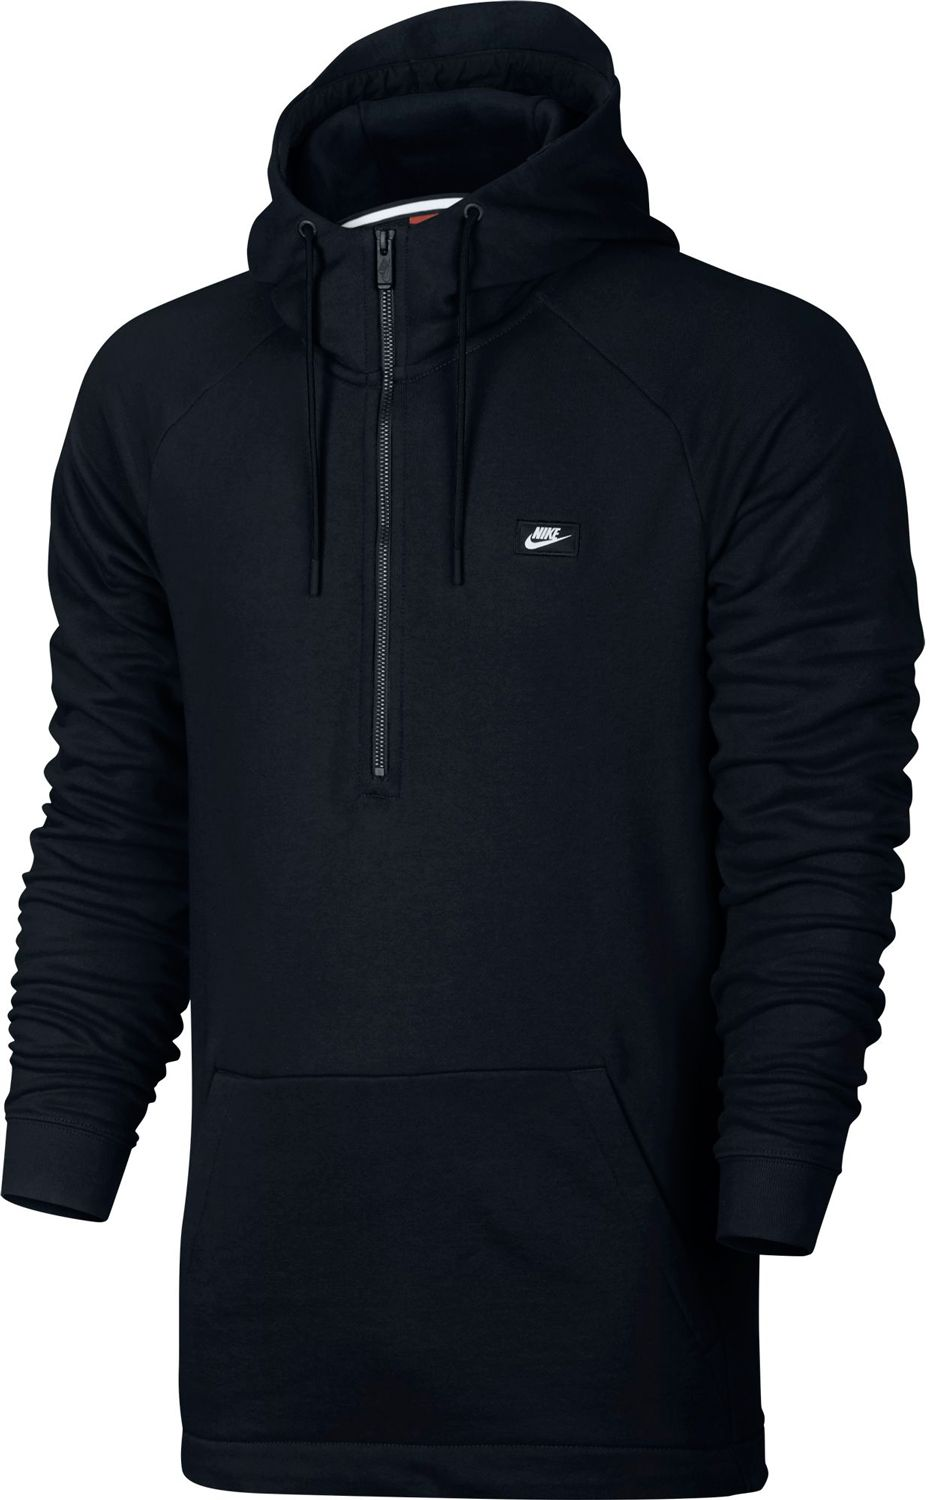 Half Zip Men's Hoodies | DICK'S Sporting Goods